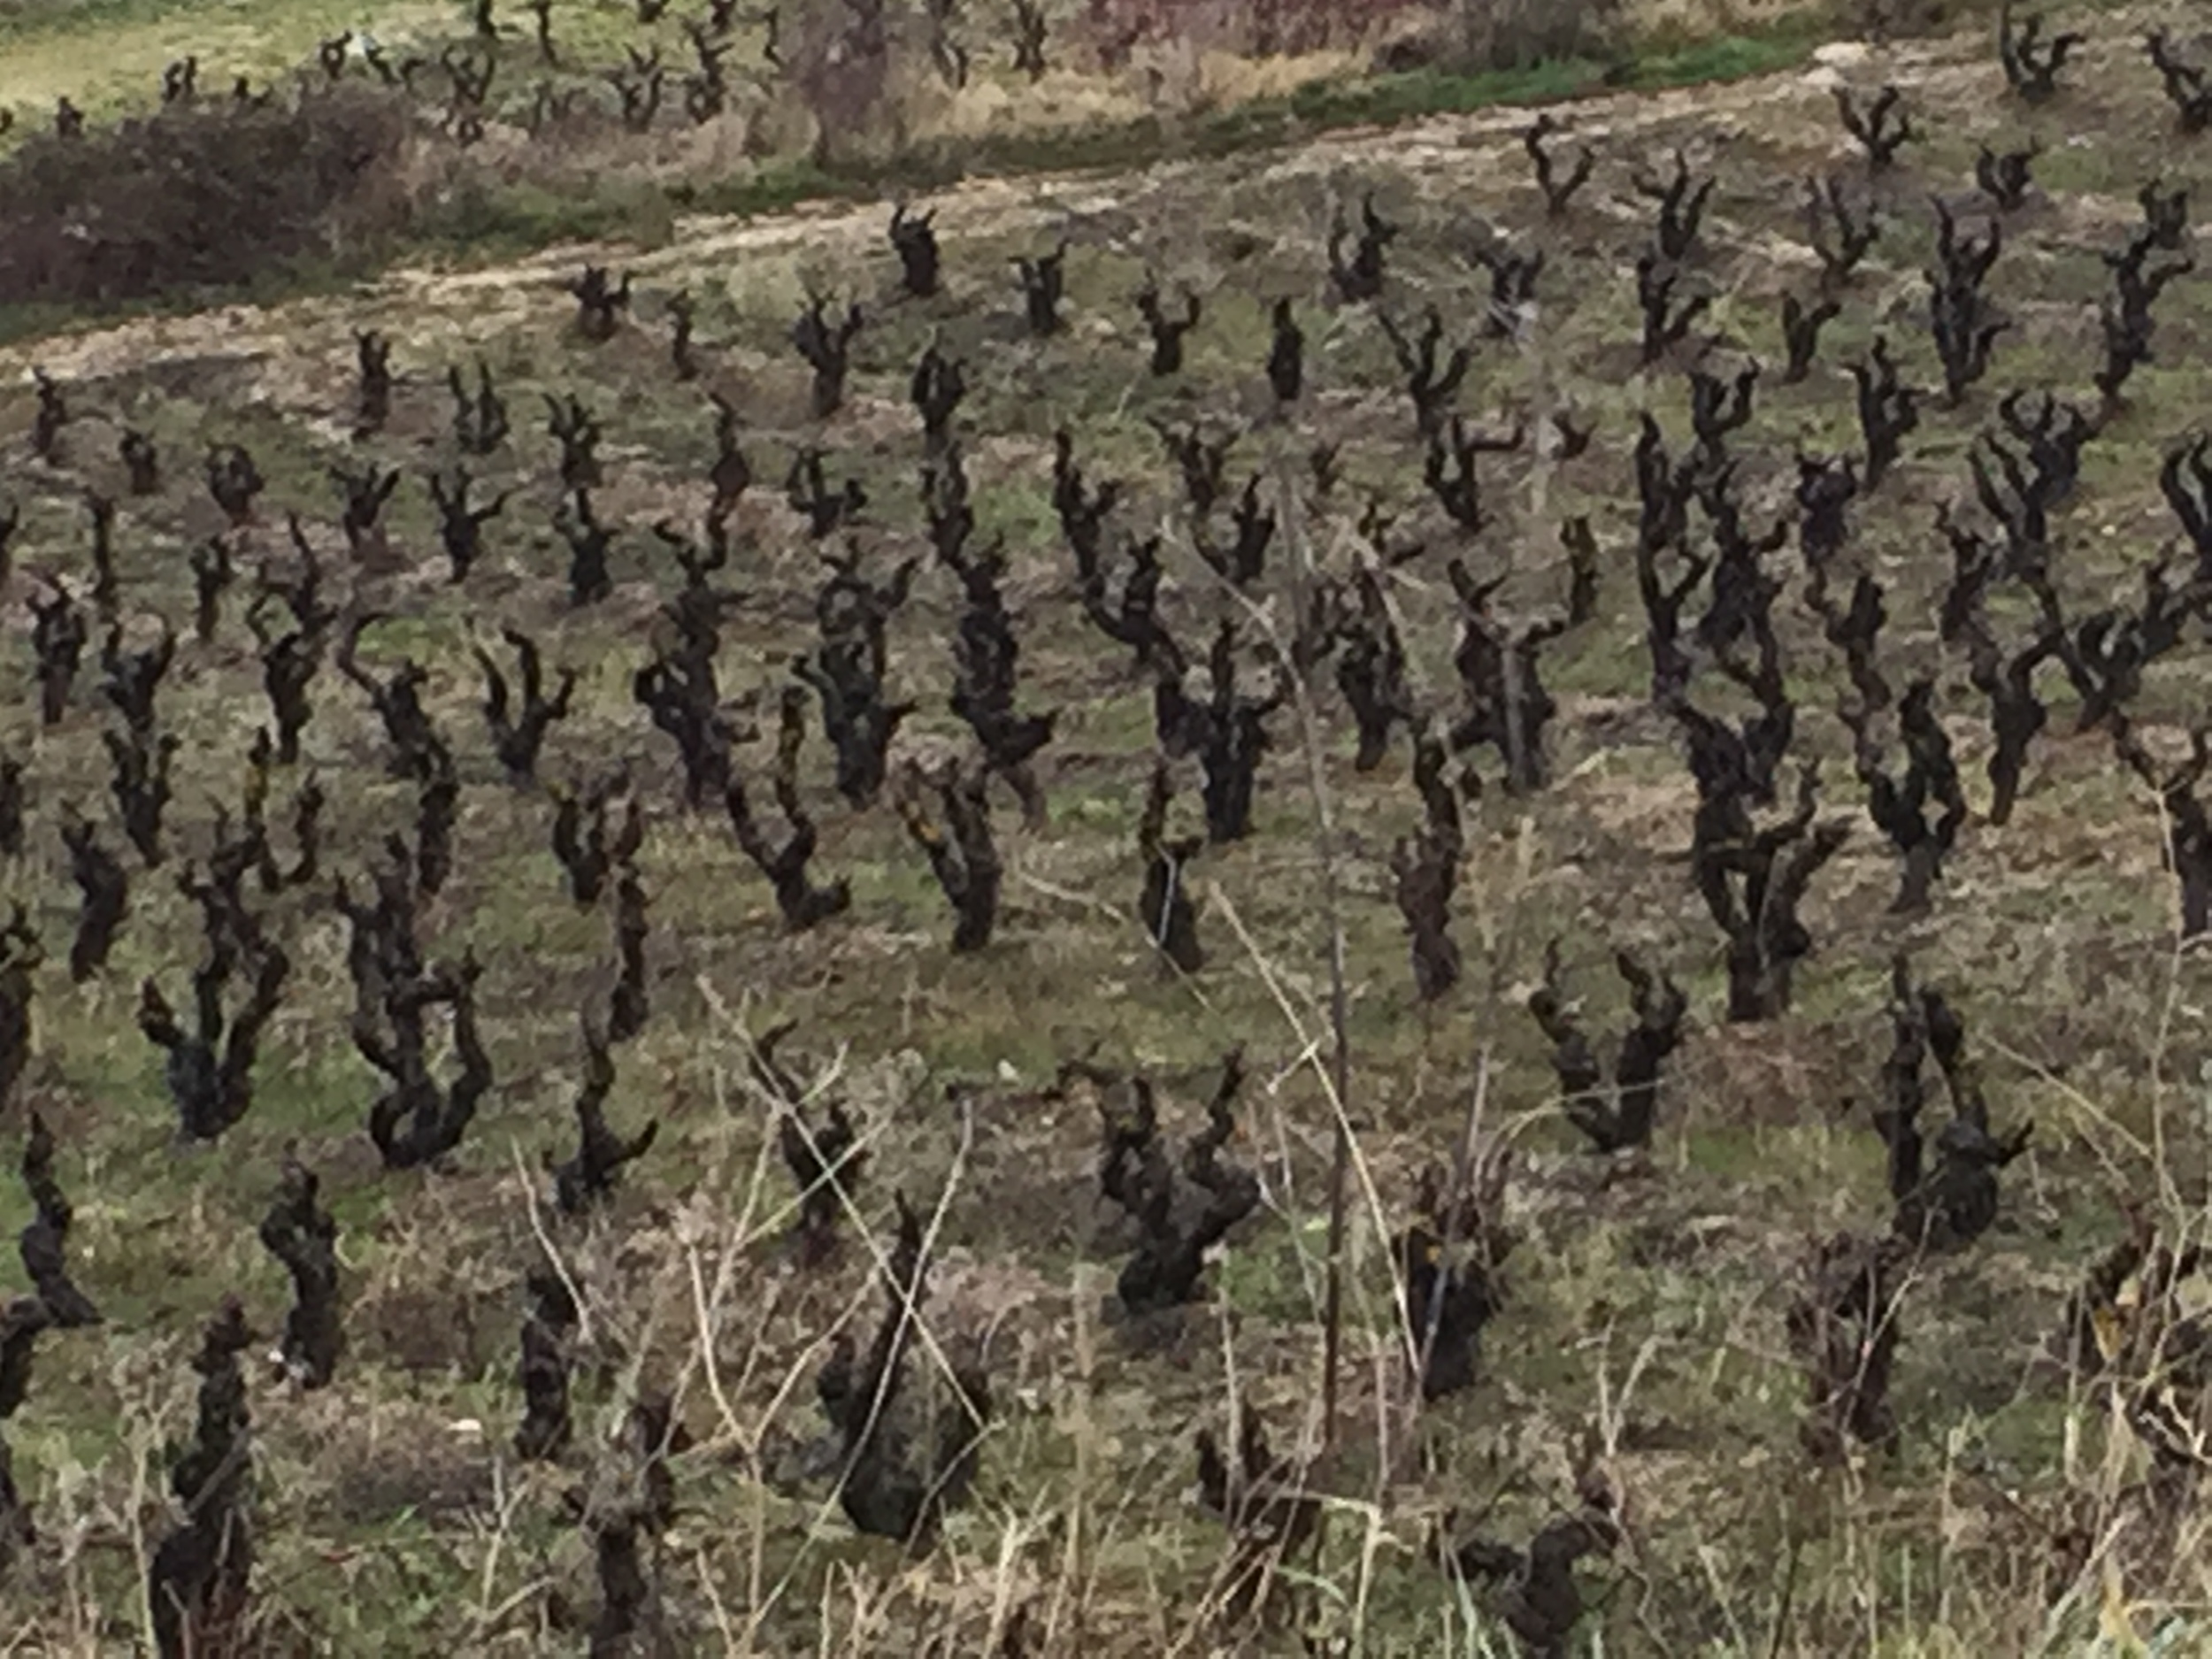 15 Hectares of Dry Farmed Bush VInes